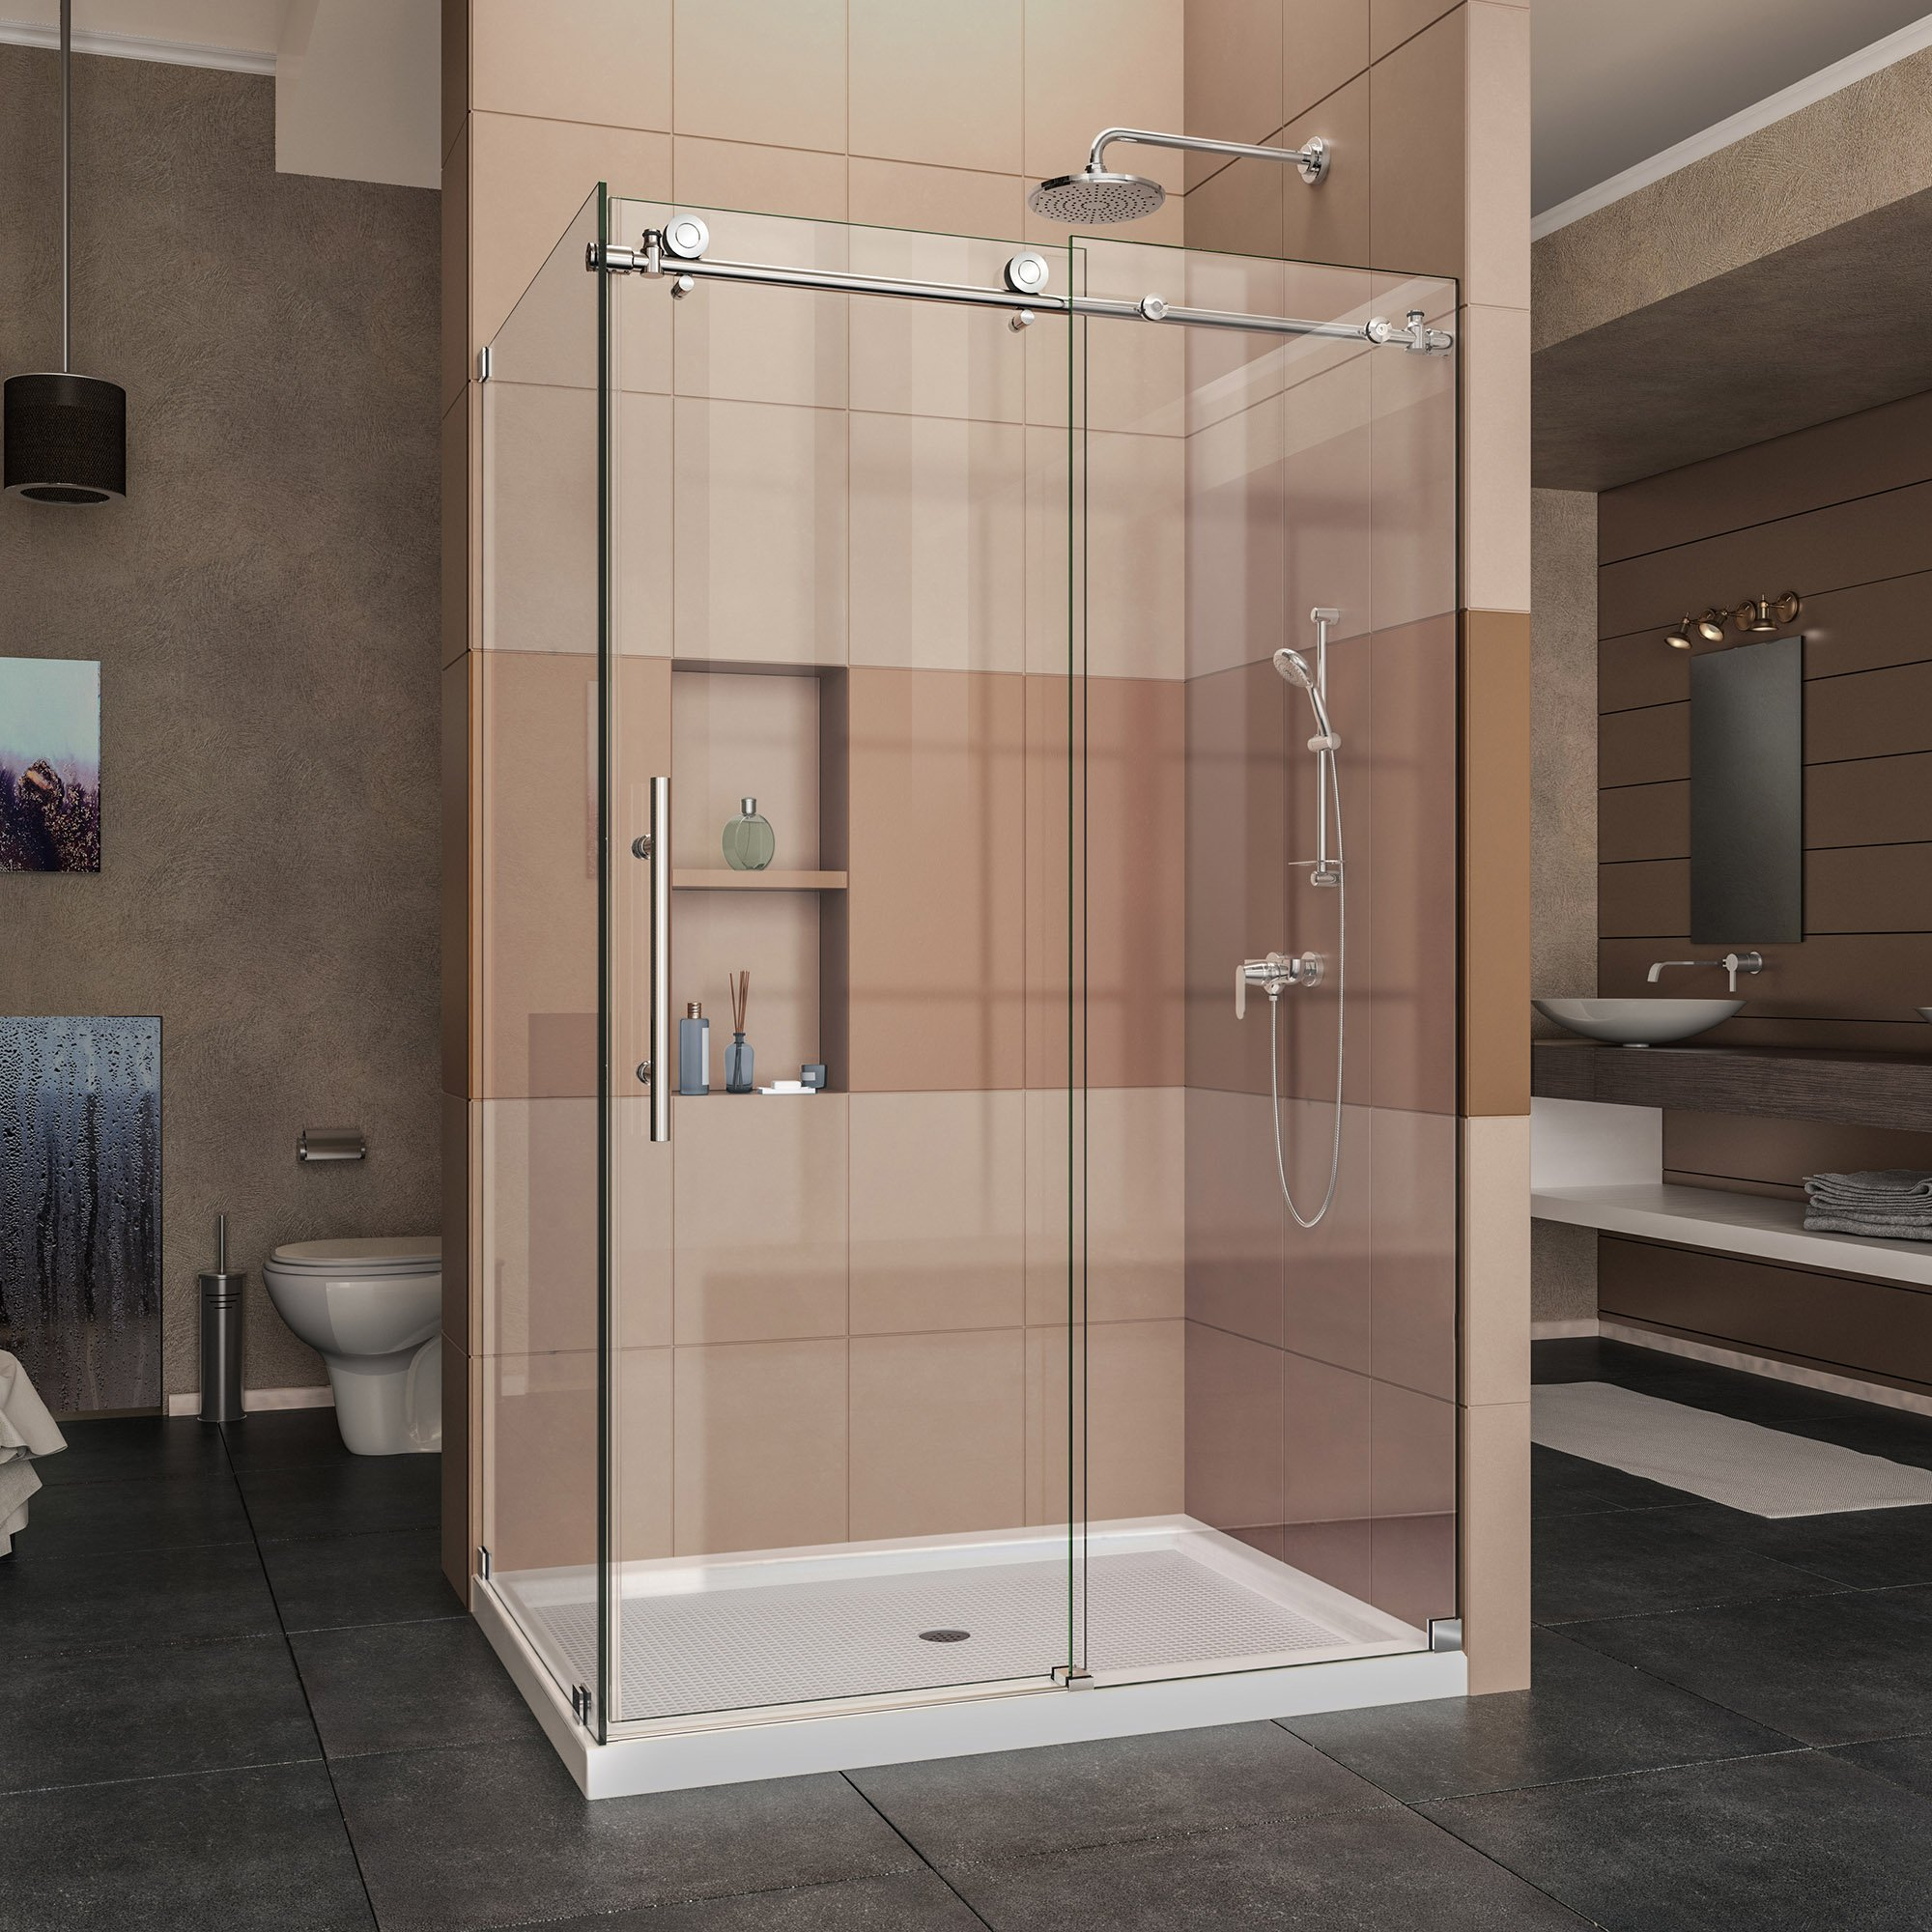 DreamLine Enigma-X 34 1/2 in. D x 44 3/8-48 3/8 in. W, Frameless Sliding Shower Enclosure, 3/8'' Glass, Polished Stainless Steel Finish by DreamLine